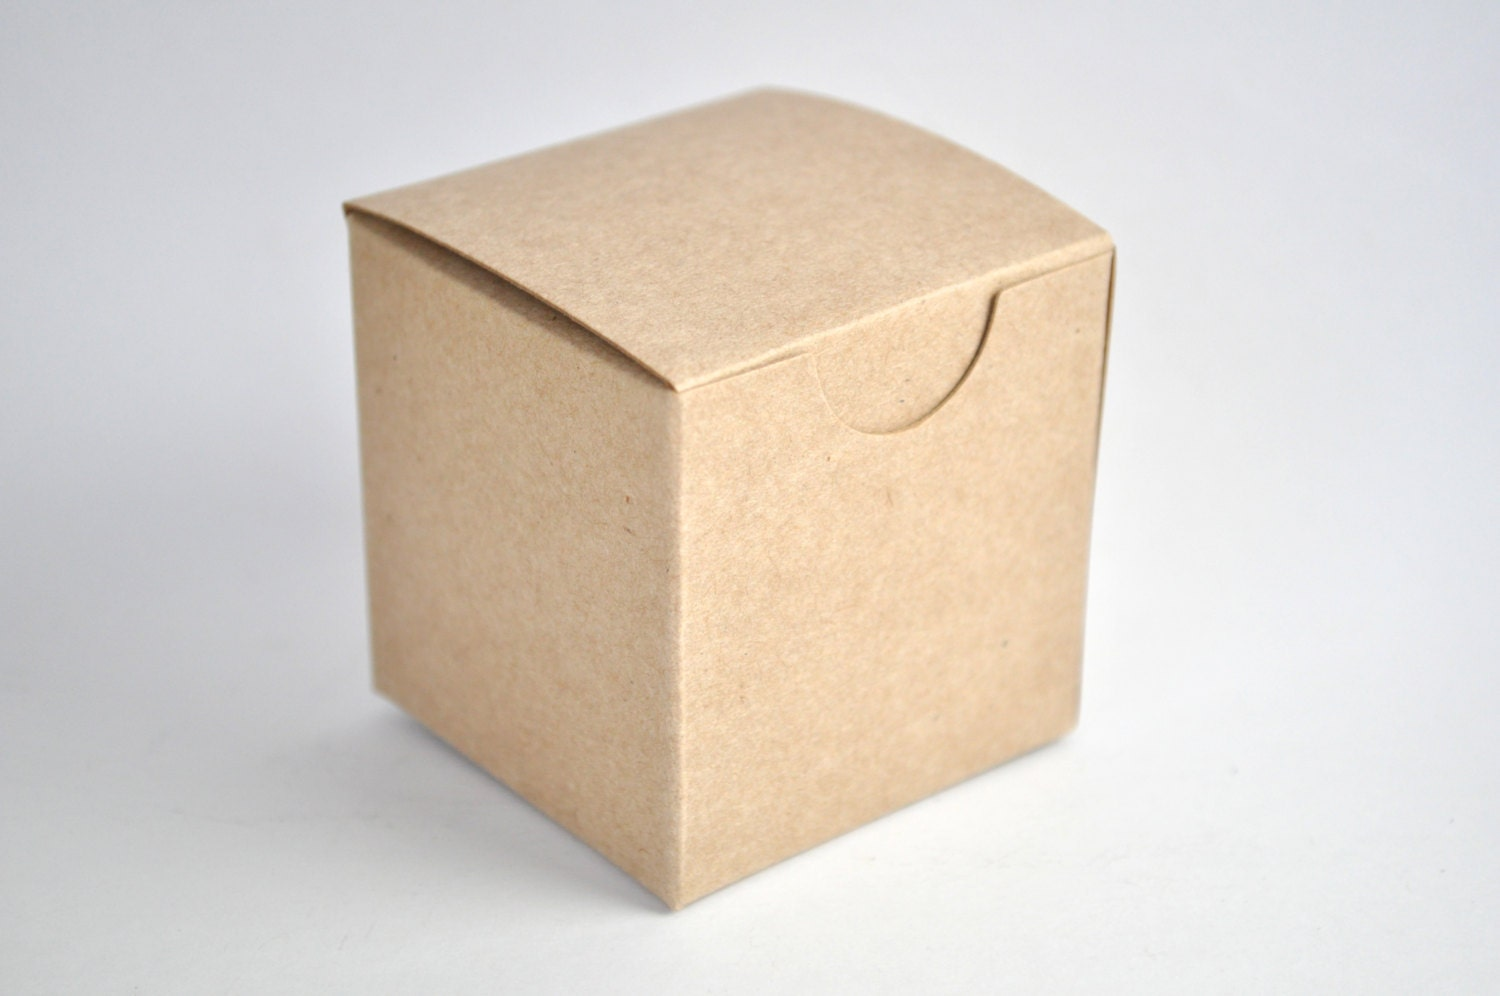 Michaels Brown Favor Boxes : Wedding favor boxes brown kraft favours box gift